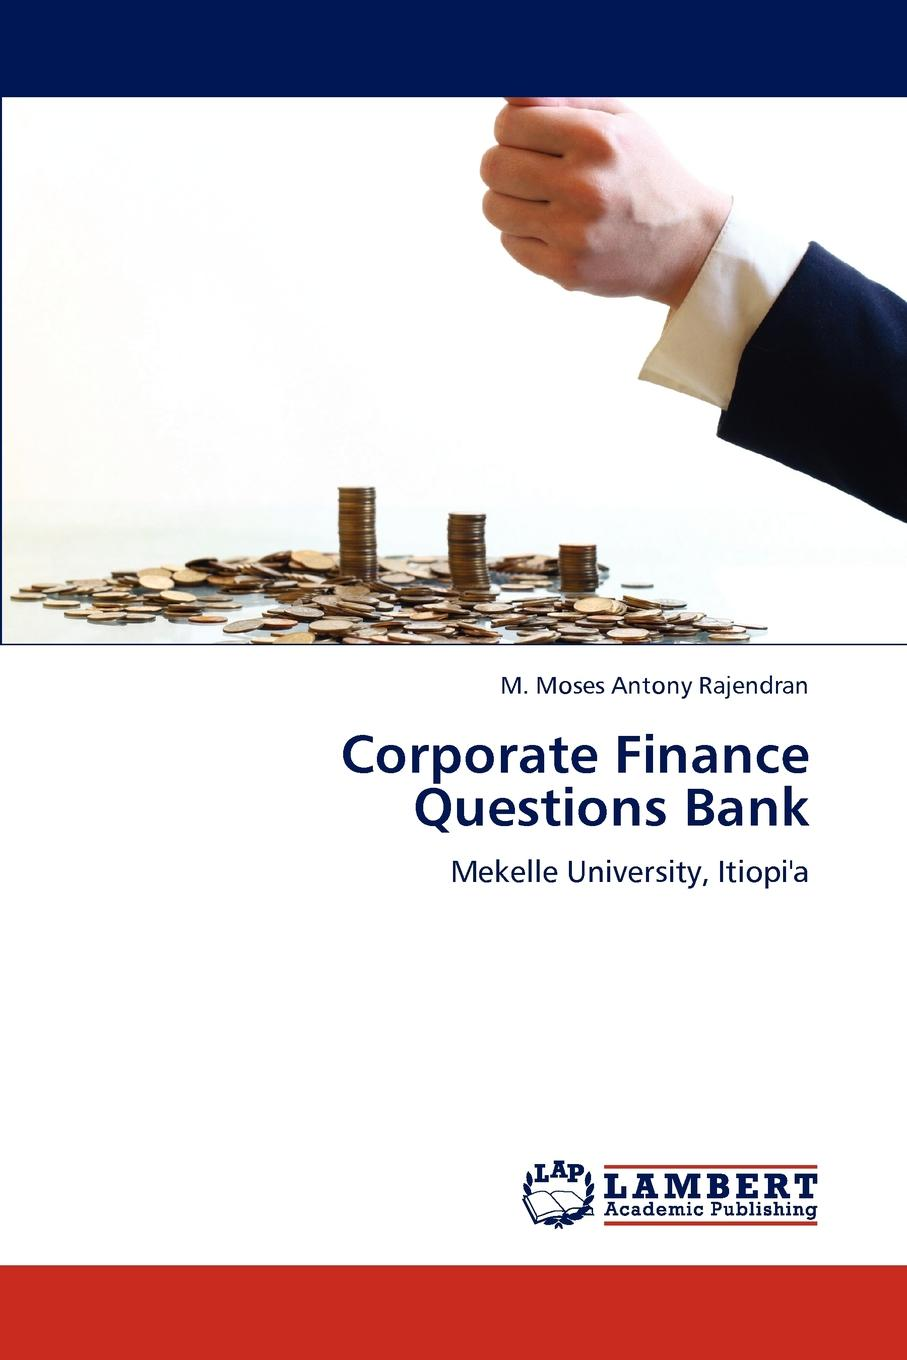 M. Moses Antony Rajendran Corporate Finance Questions Bank